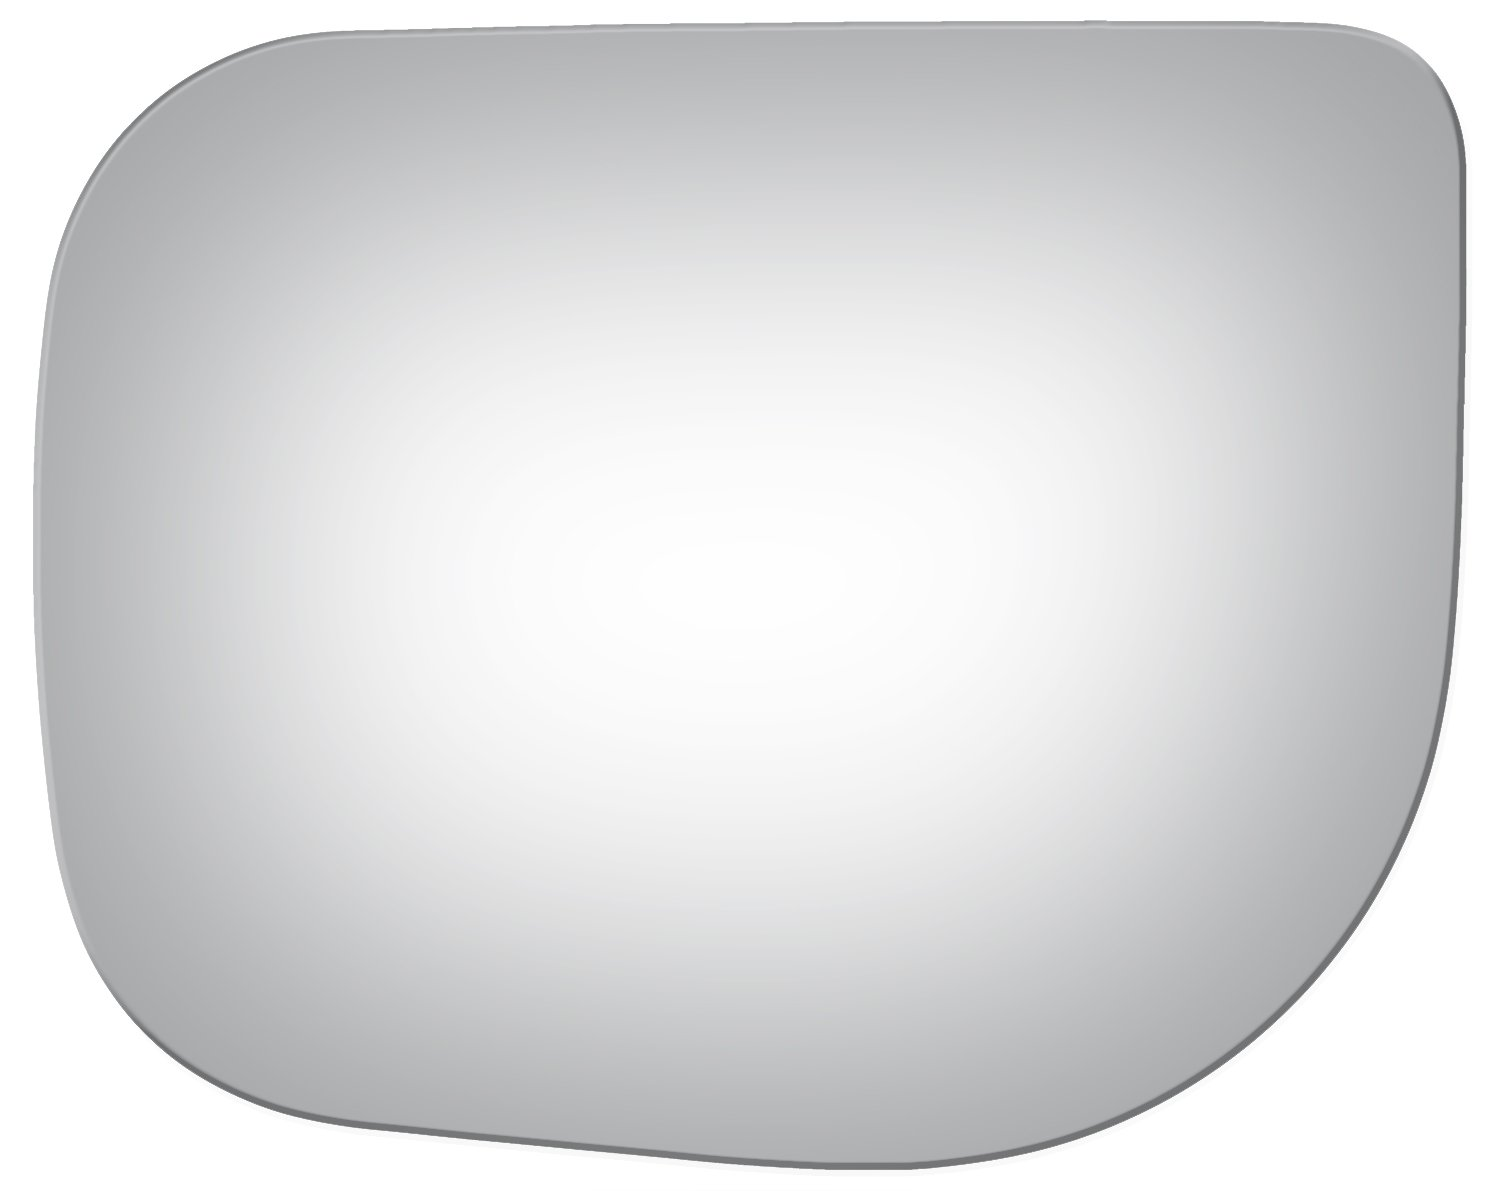 2004, 2005, 2006, 2007, 2008, 2009 Burco 4013 Flat Driver Side Replacement Mirror Glass for Nissan Armada Titan